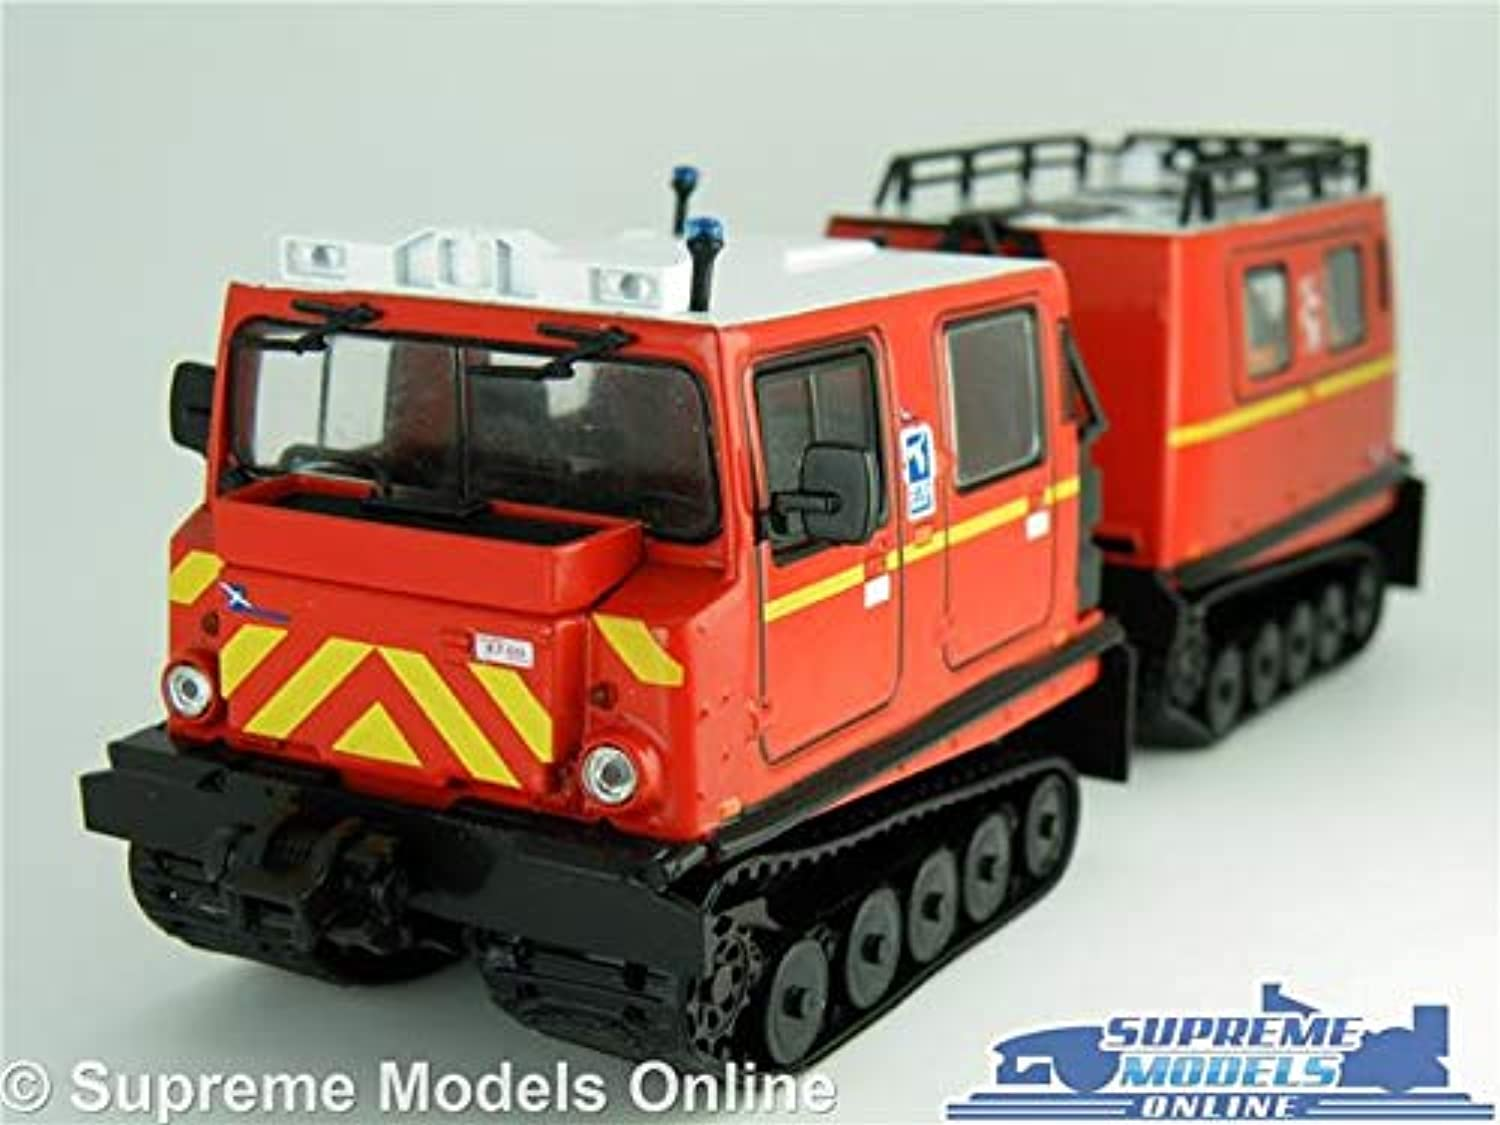 HAGGLUNDS BV206 270 FIRE ENGINE MODEL TRUCK 1 43 SCALE IXO SNOW MOBILE K8